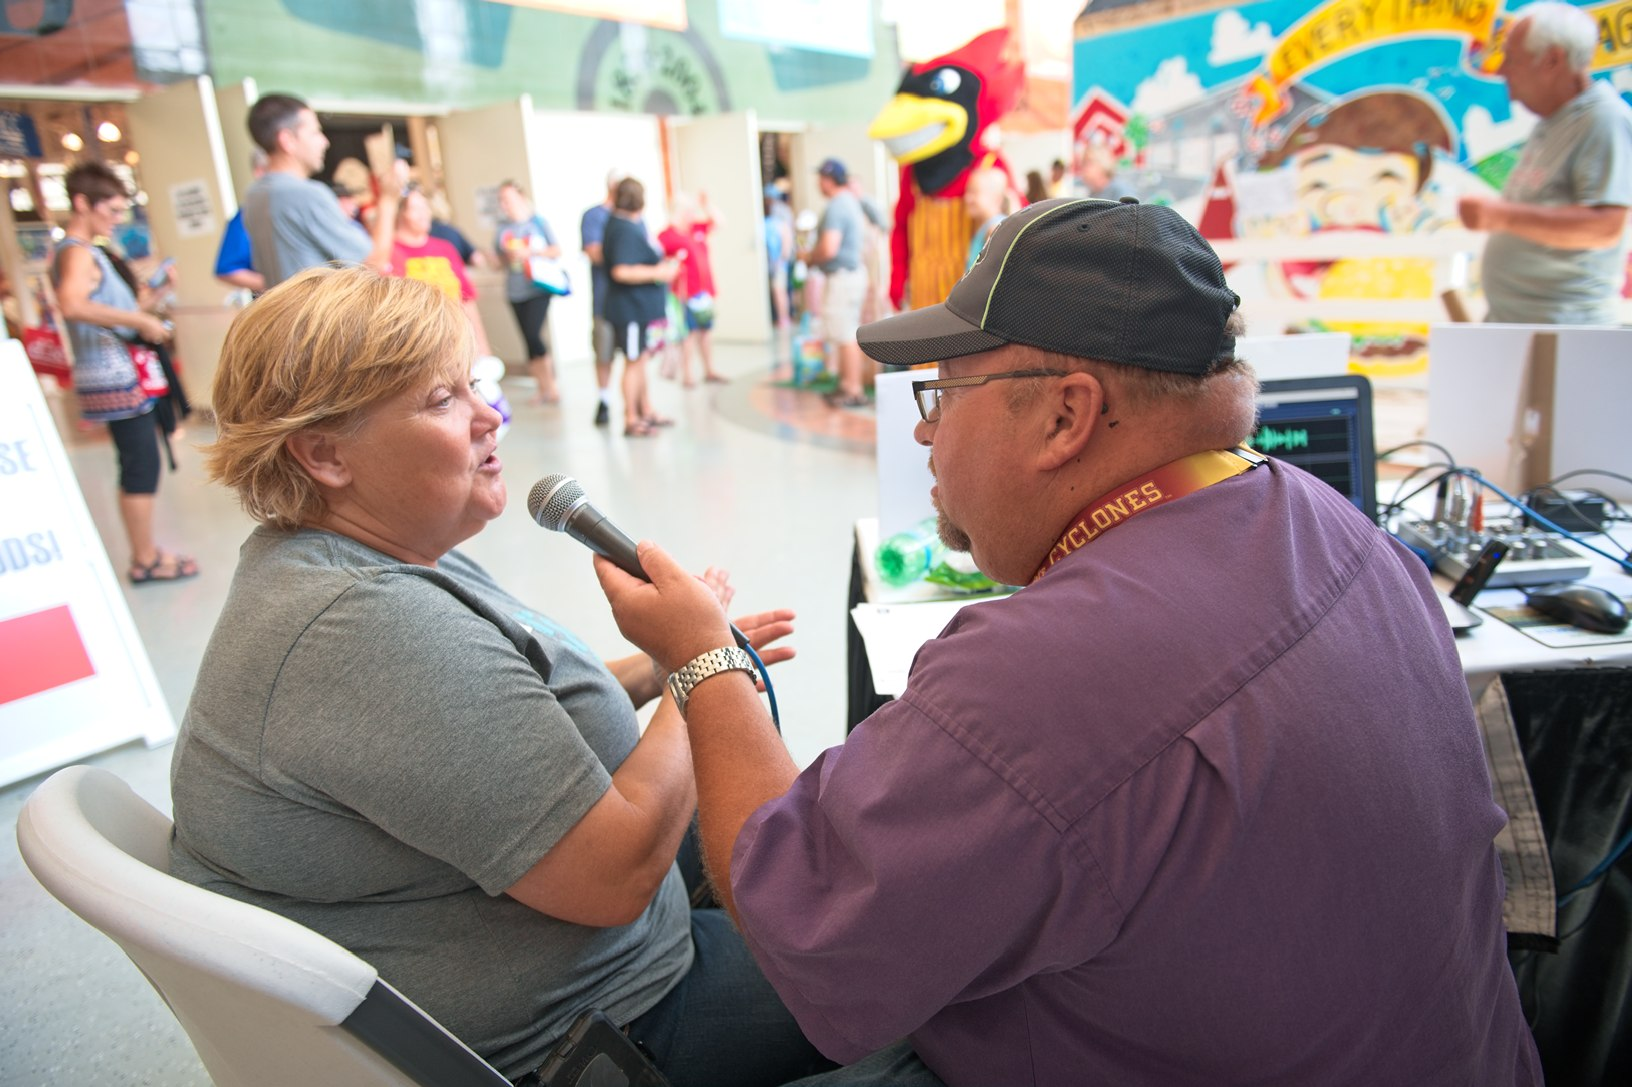 April Hemmes, a farmer from Hampton, speaks with Duane Murley of KWMT about the Iowa State Fair fun. Photo credit: Joseph L. Murphy/Iowa Soybean Association